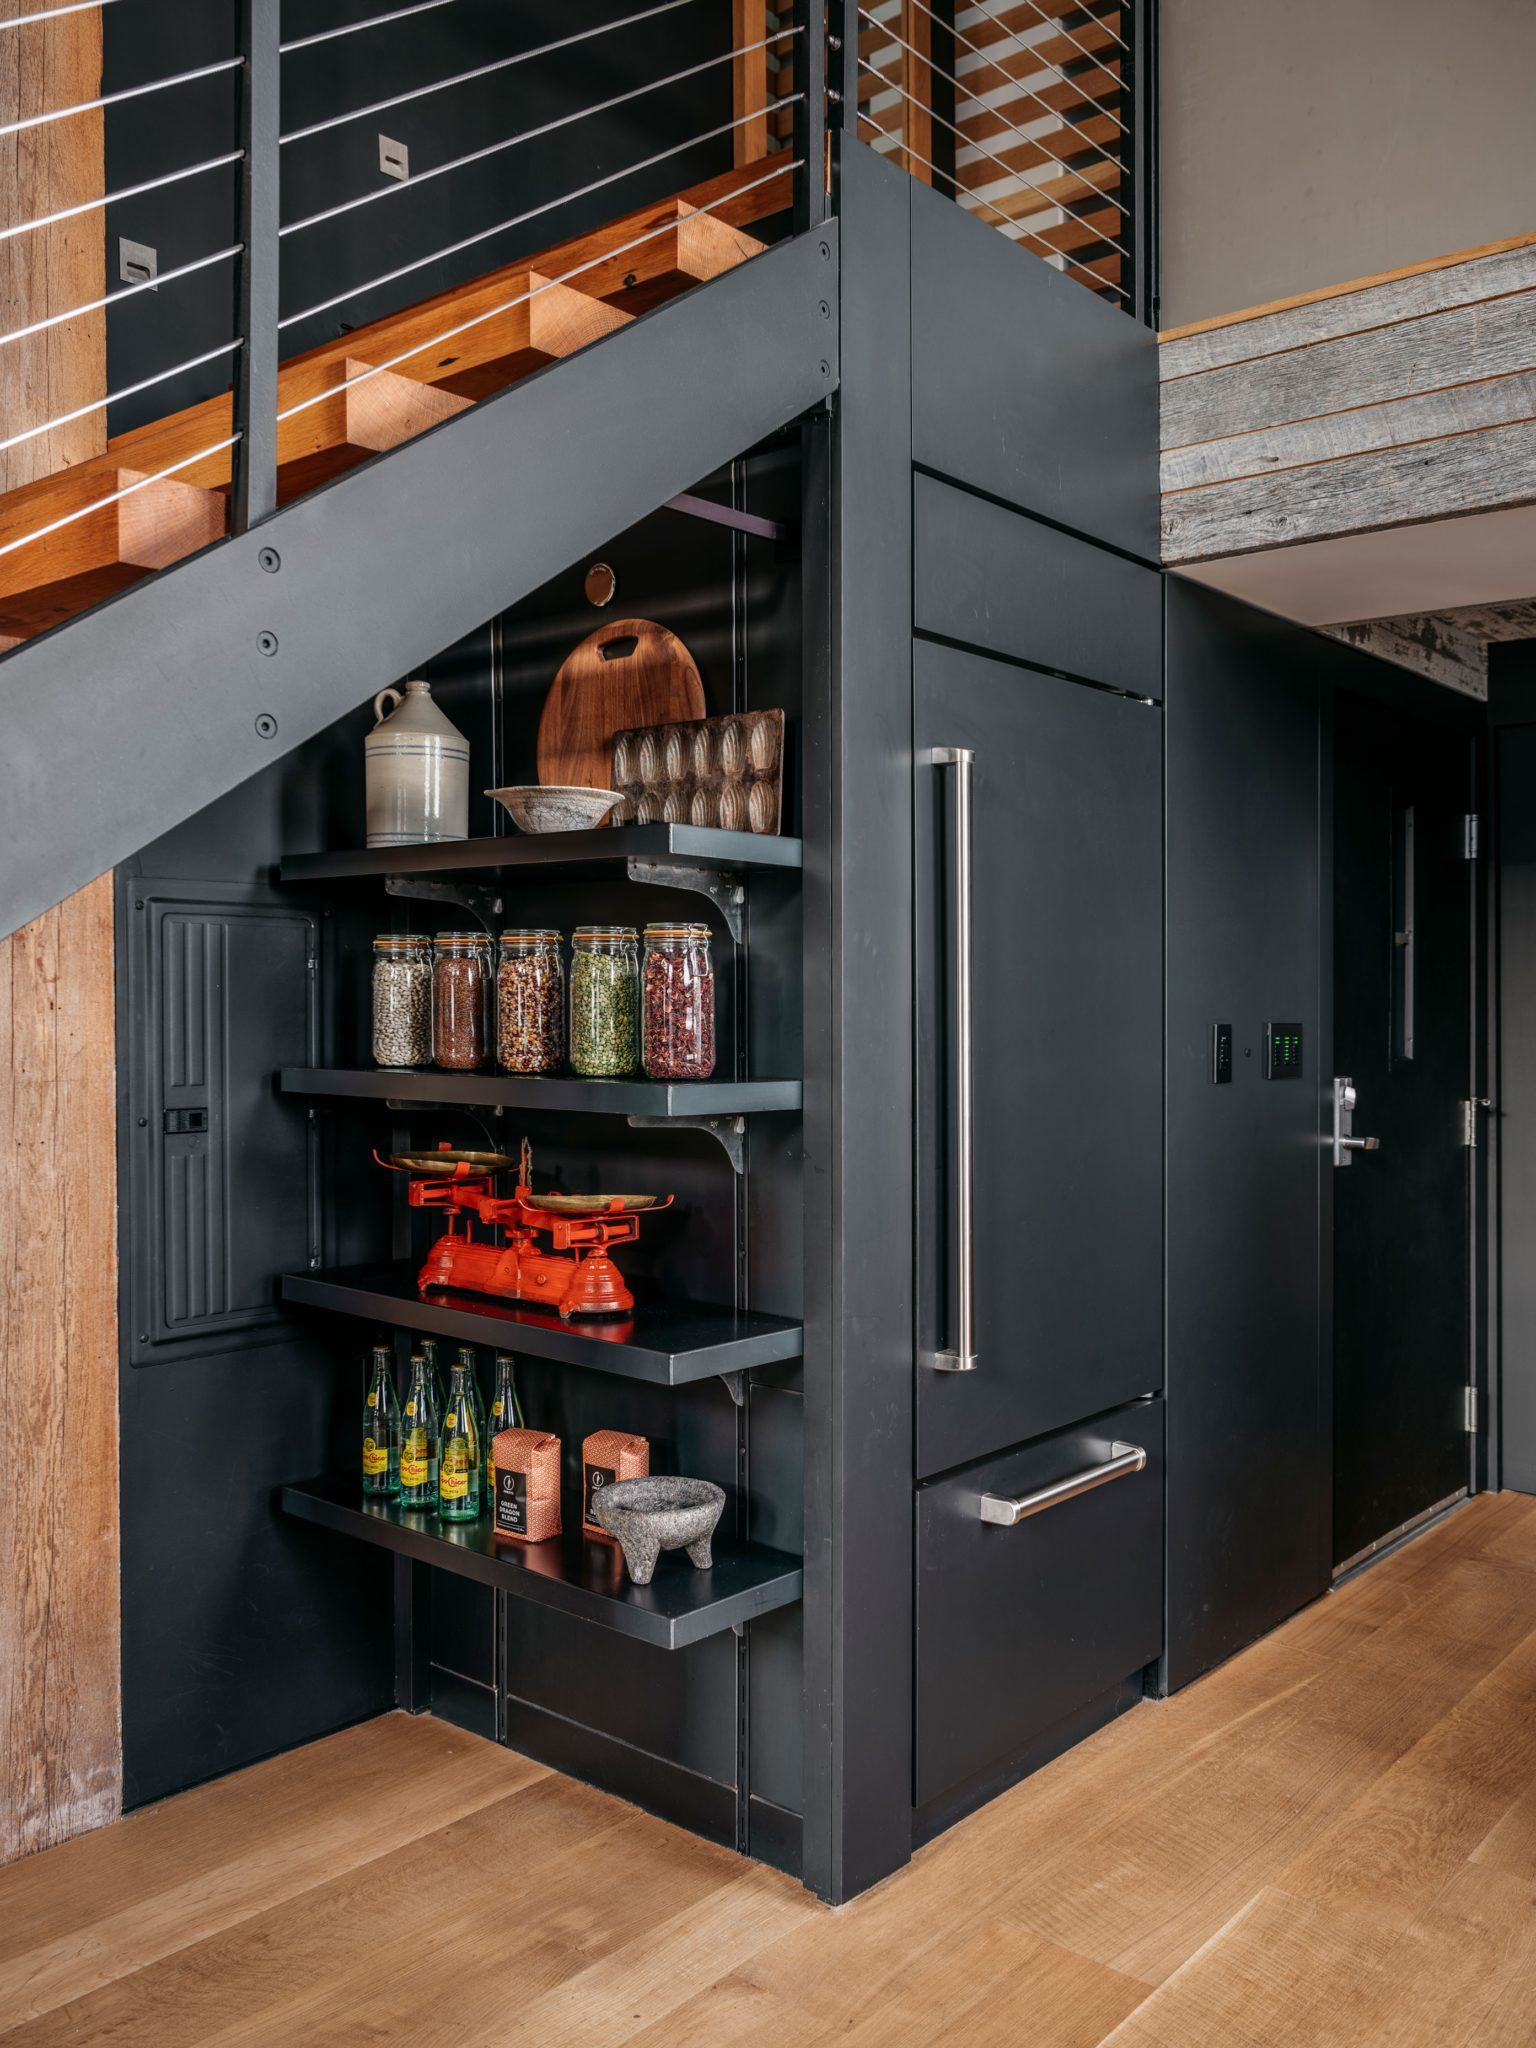 Under the stairs, this hidden shelving was also custom designed byMODTAGE Design.